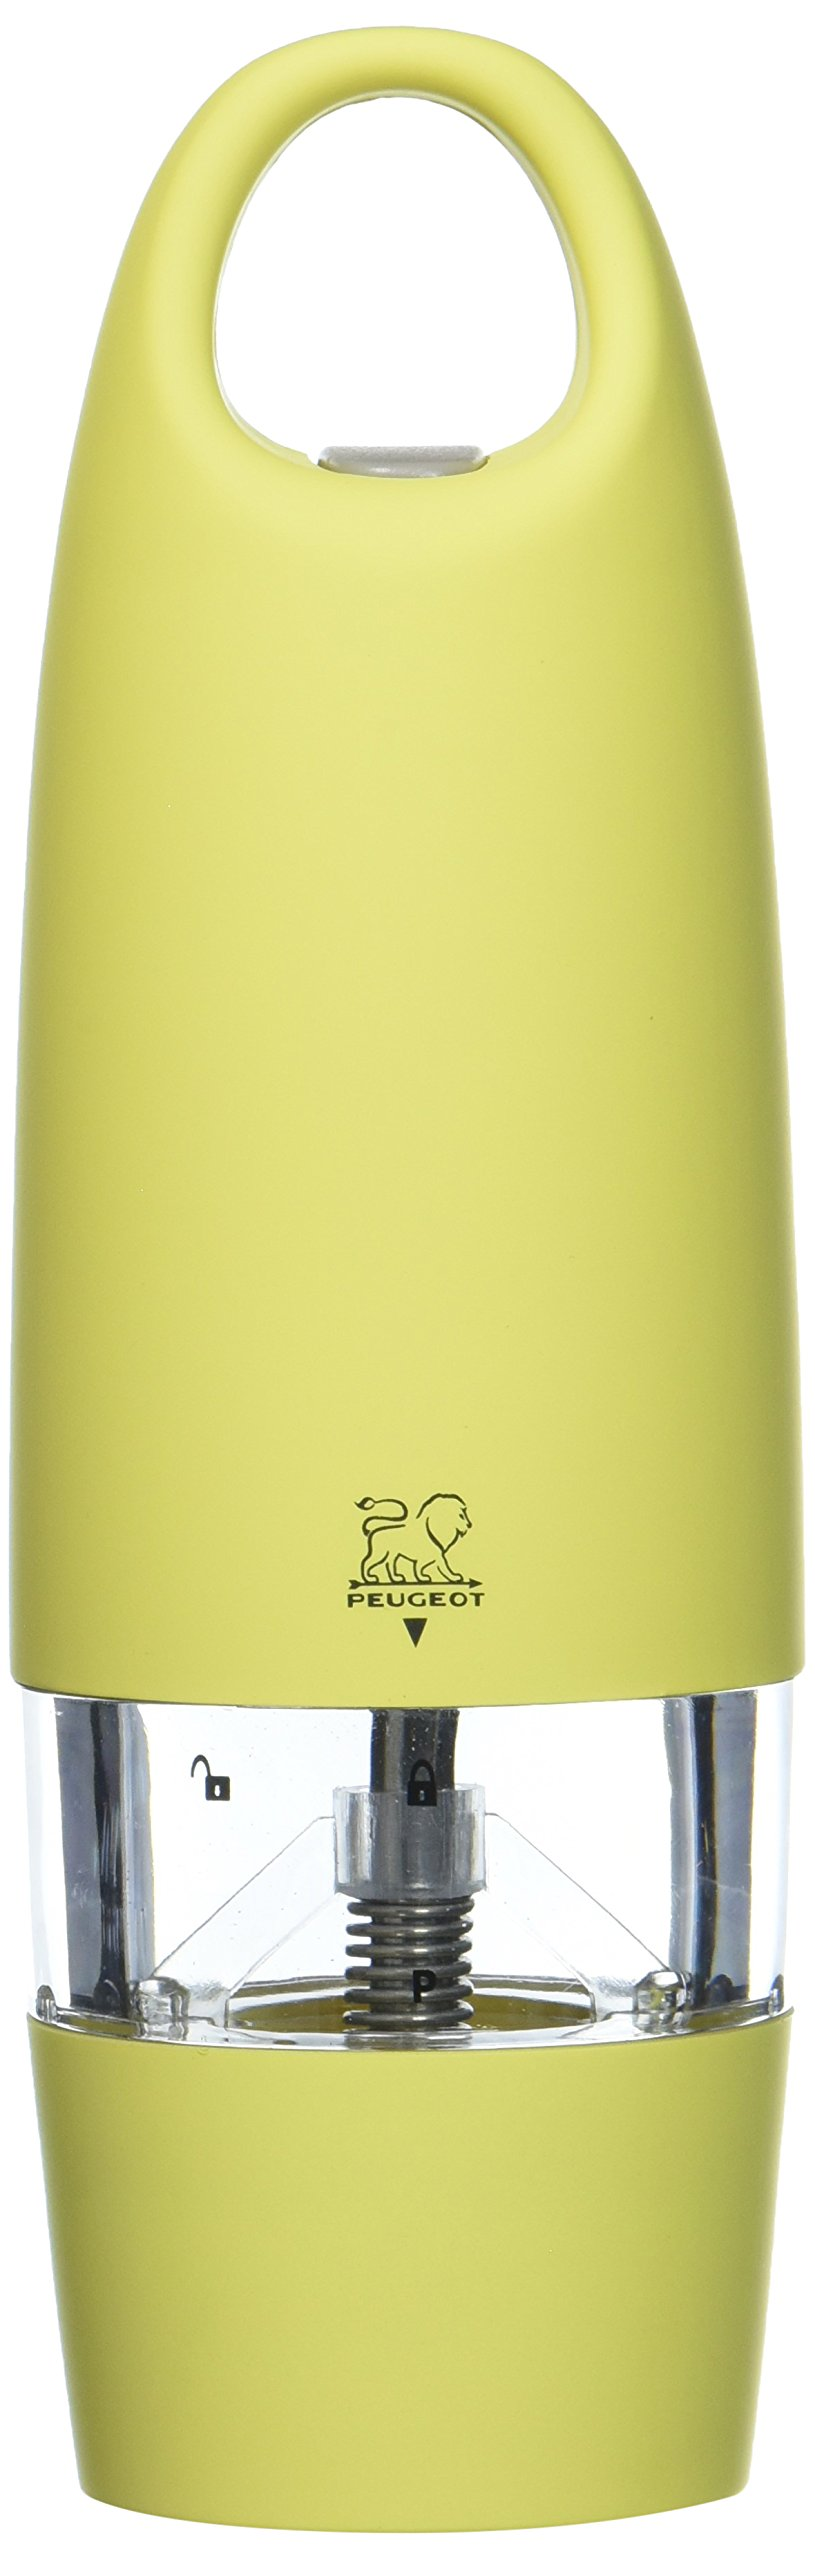 Peugeot Zest Electric Soft Touch Pepper Mill, Yellow